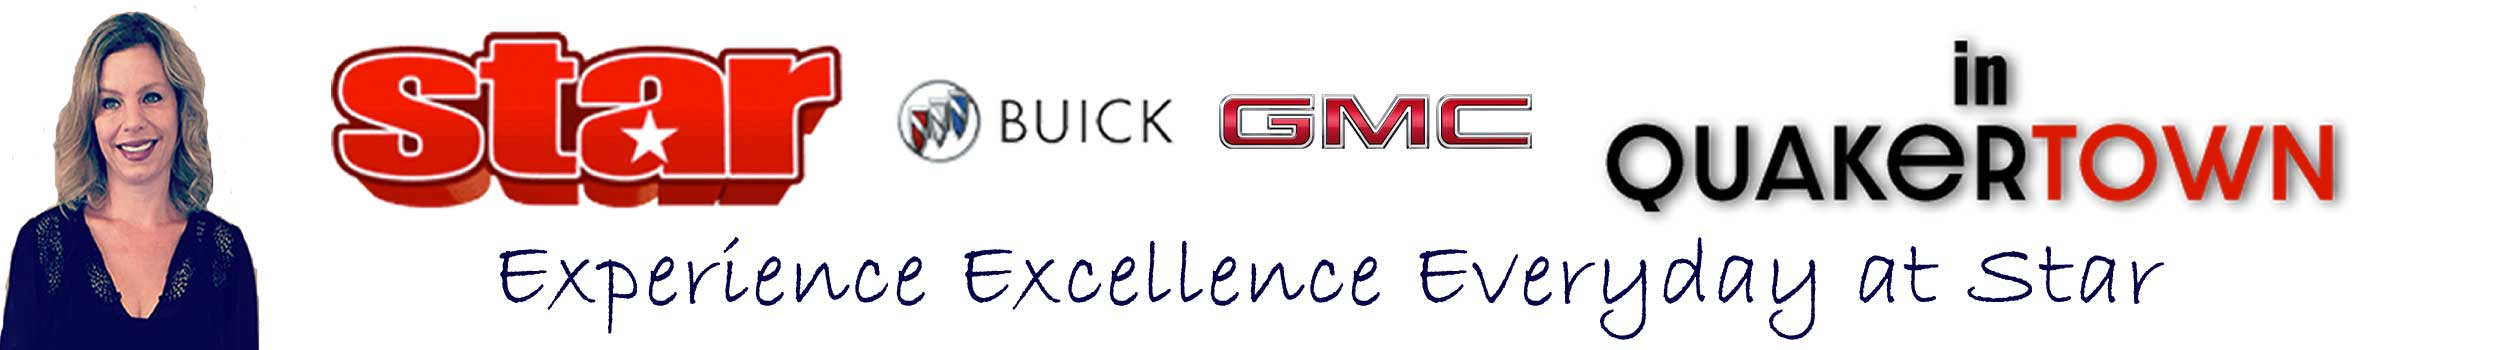 Star Buick GMC in Quakertown PA